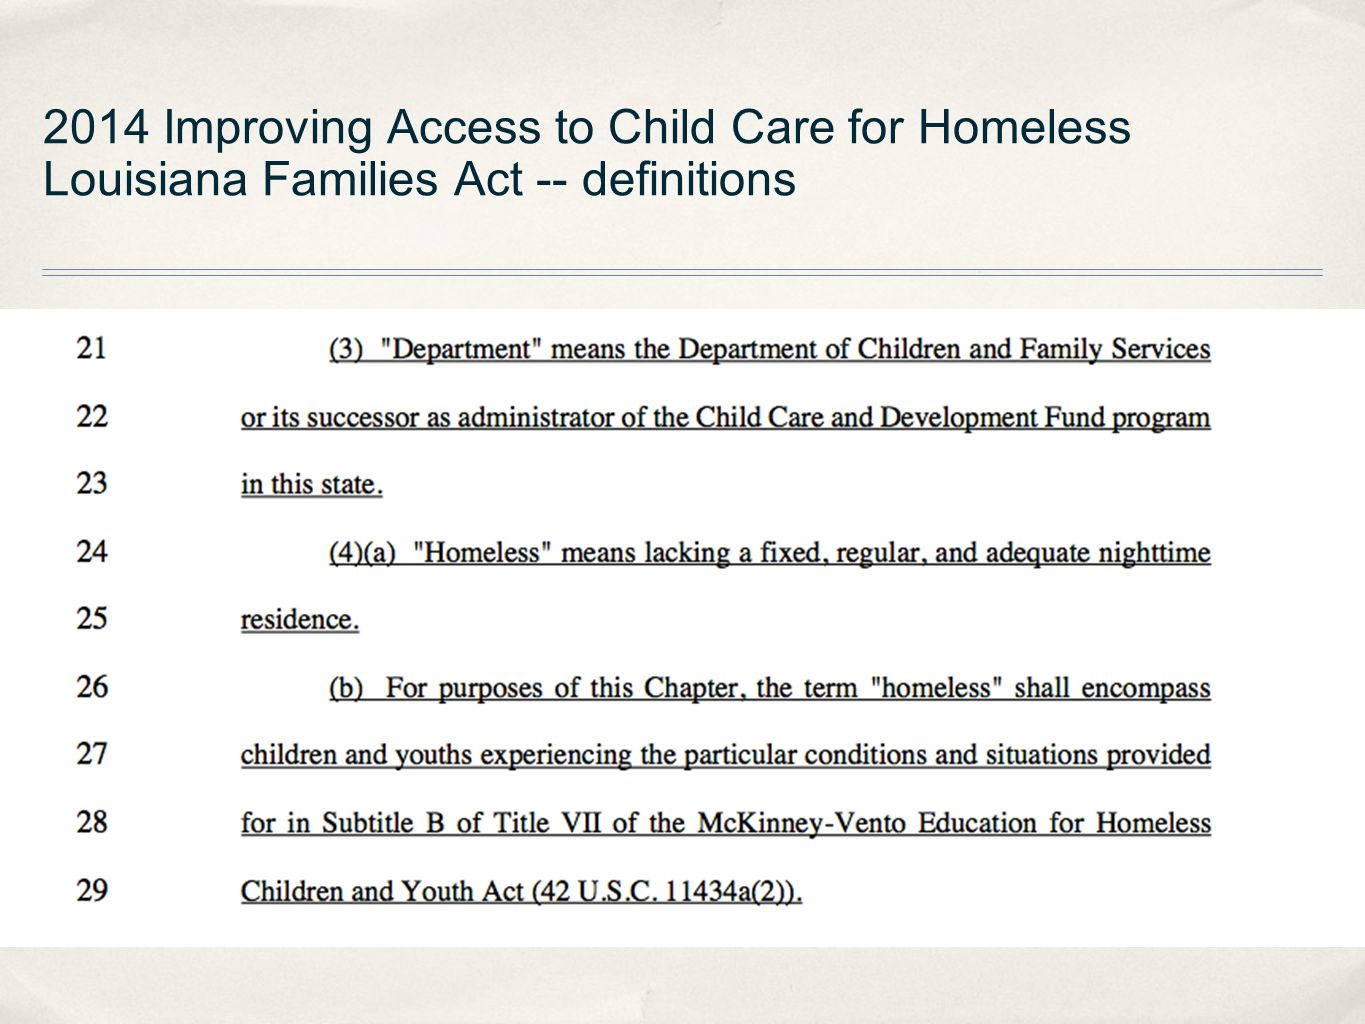 2014 Improving Access to Child Care for Homeless Louisiana Families Act -- definitions